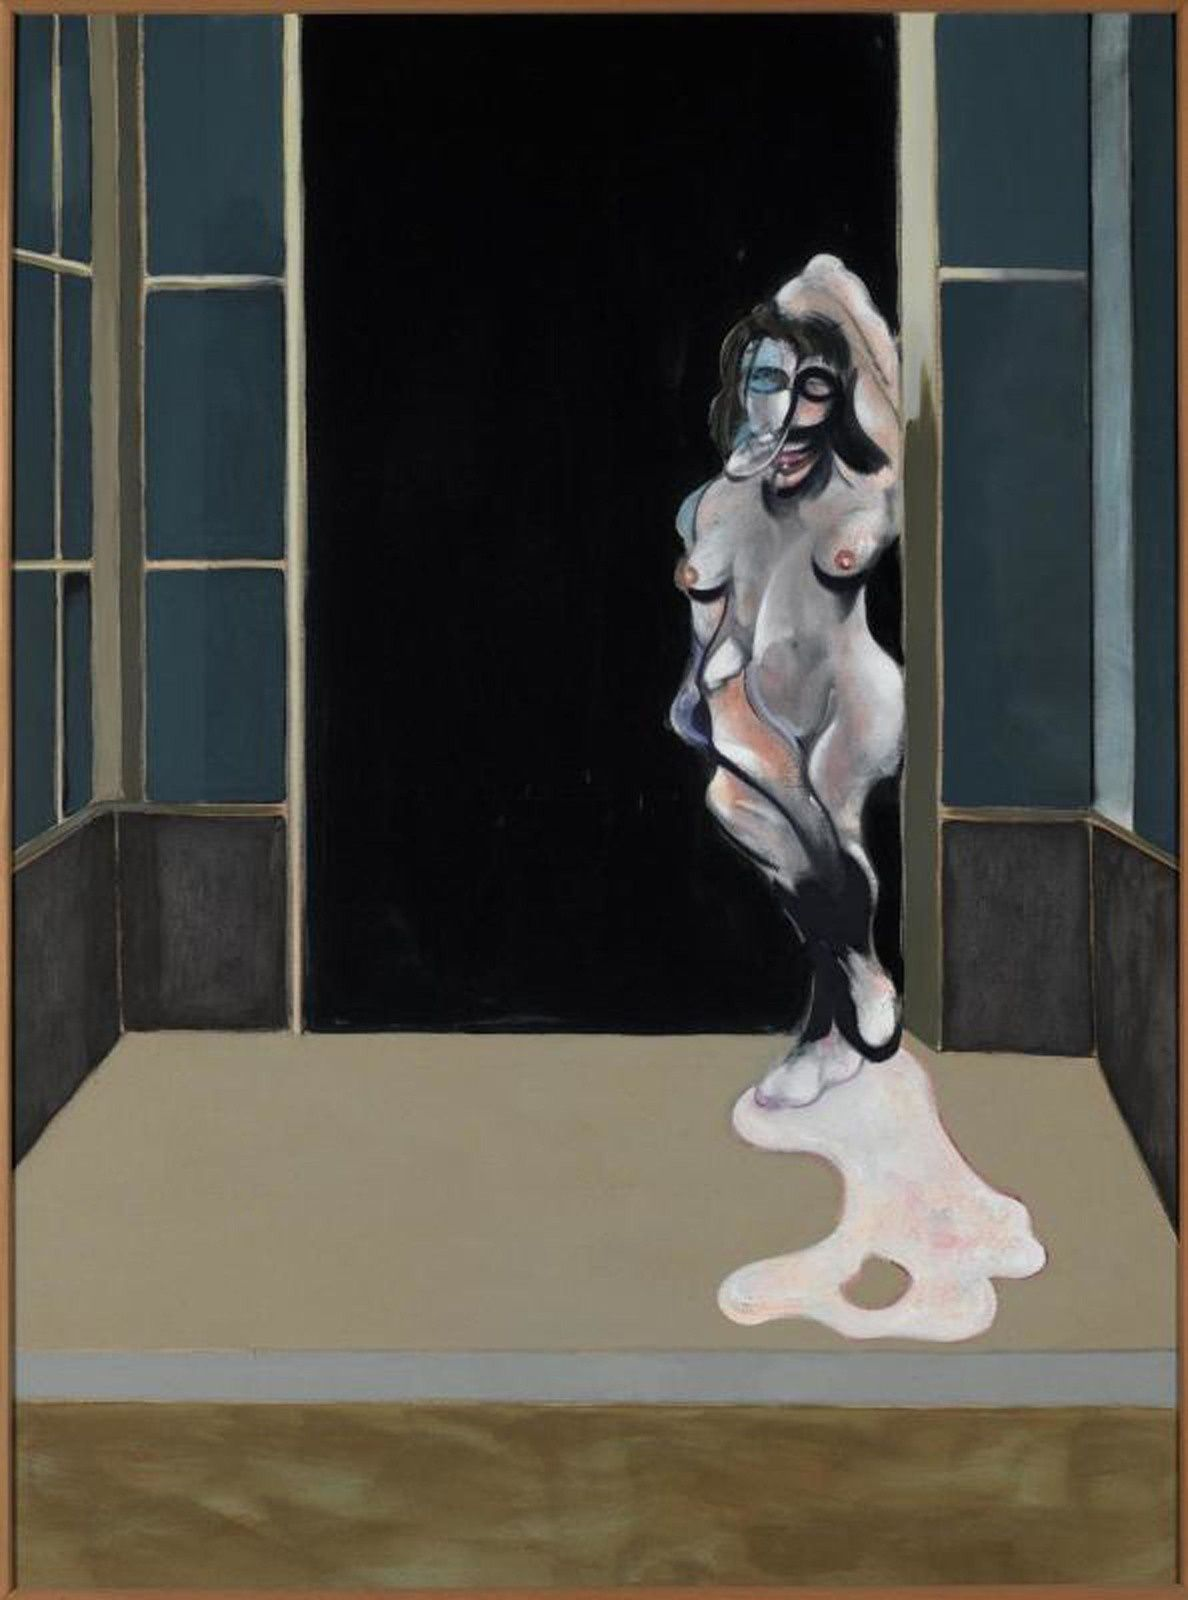 """Female nude standing in doorway"", 1972 de Francis BACON © Philippe Migeat - Centre Pompidou, MNAM-CCI /Dist. RMN-GP © The Estate of Francis Bacon / All rights reserved / Adagp, Paris and DACS, Londres"